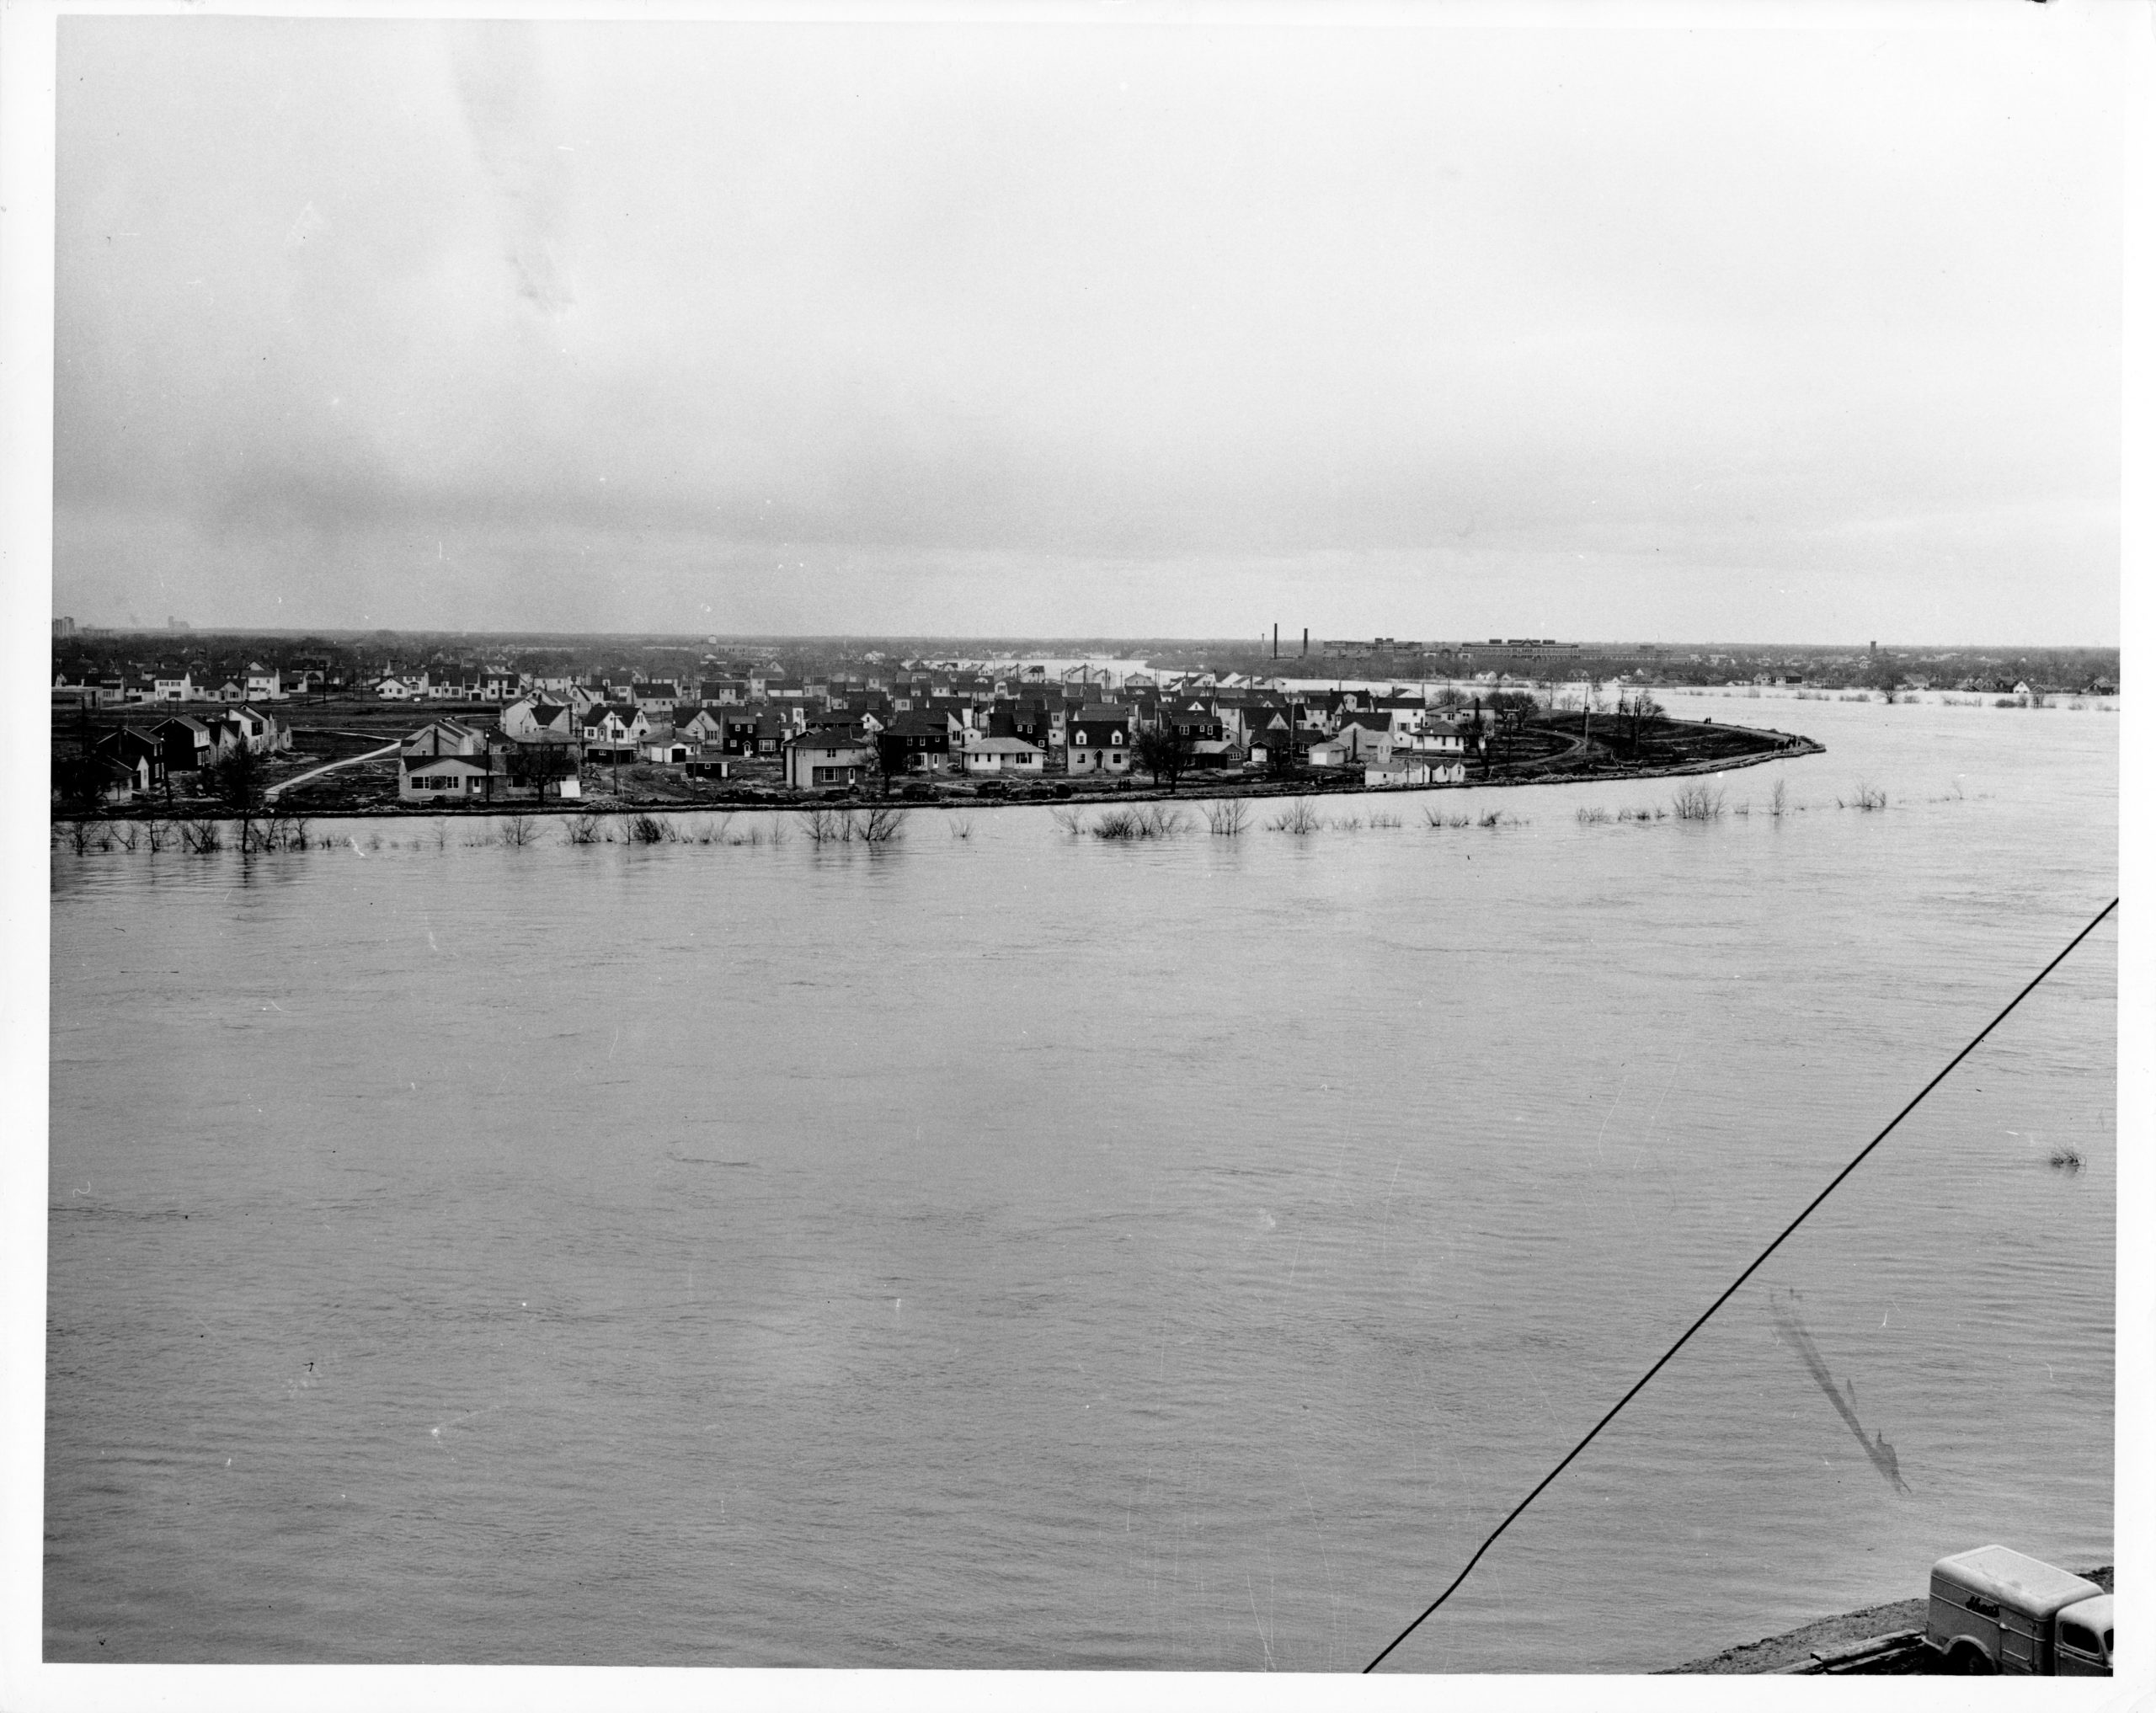 from roof of pelisier 1950s flood